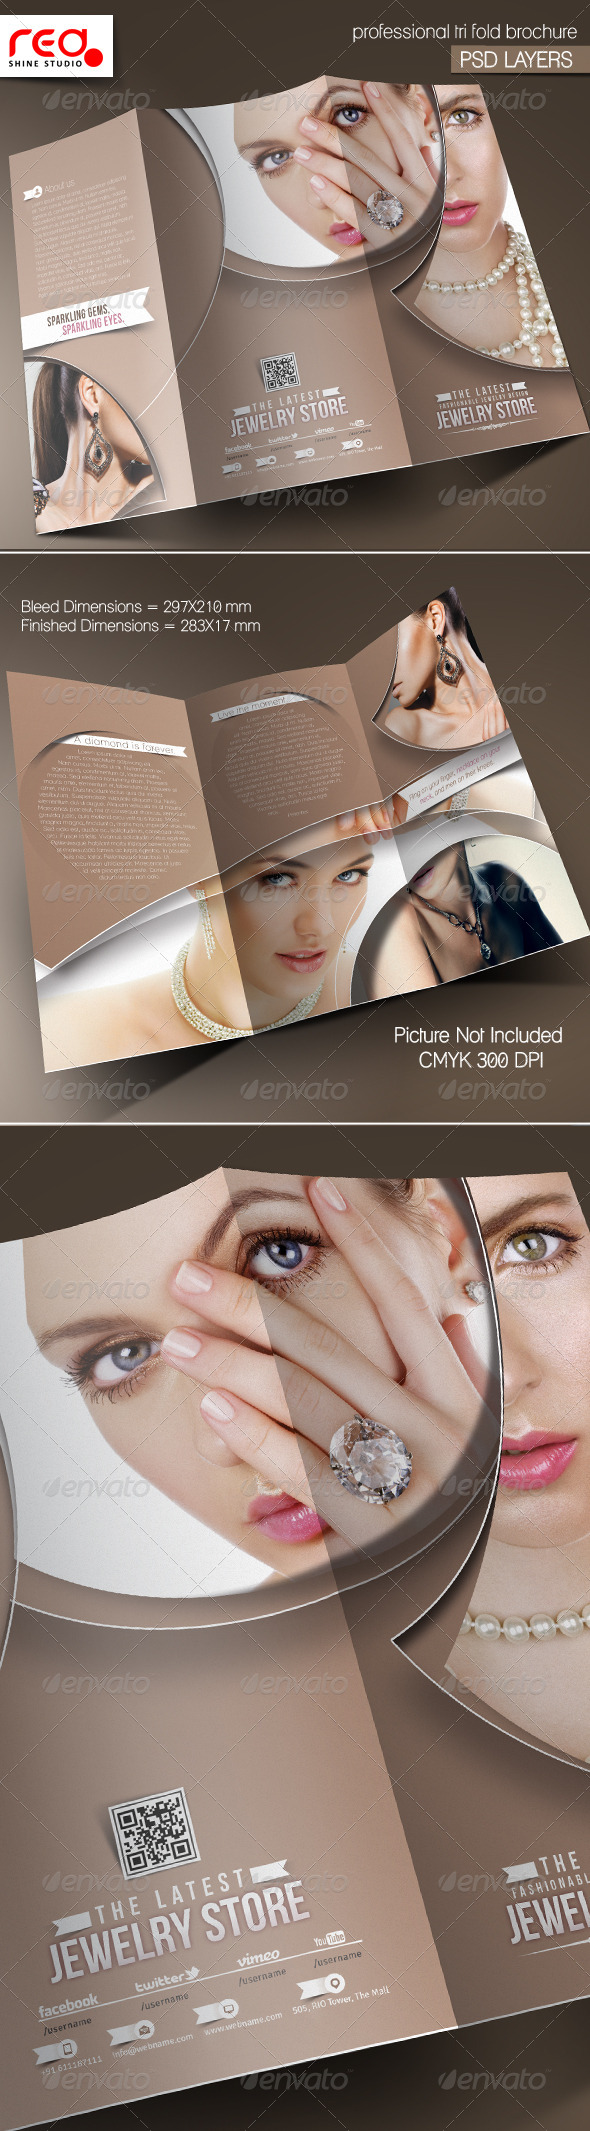 GraphicRiver Jewelry Shop Trifold Brochure Template 5536613